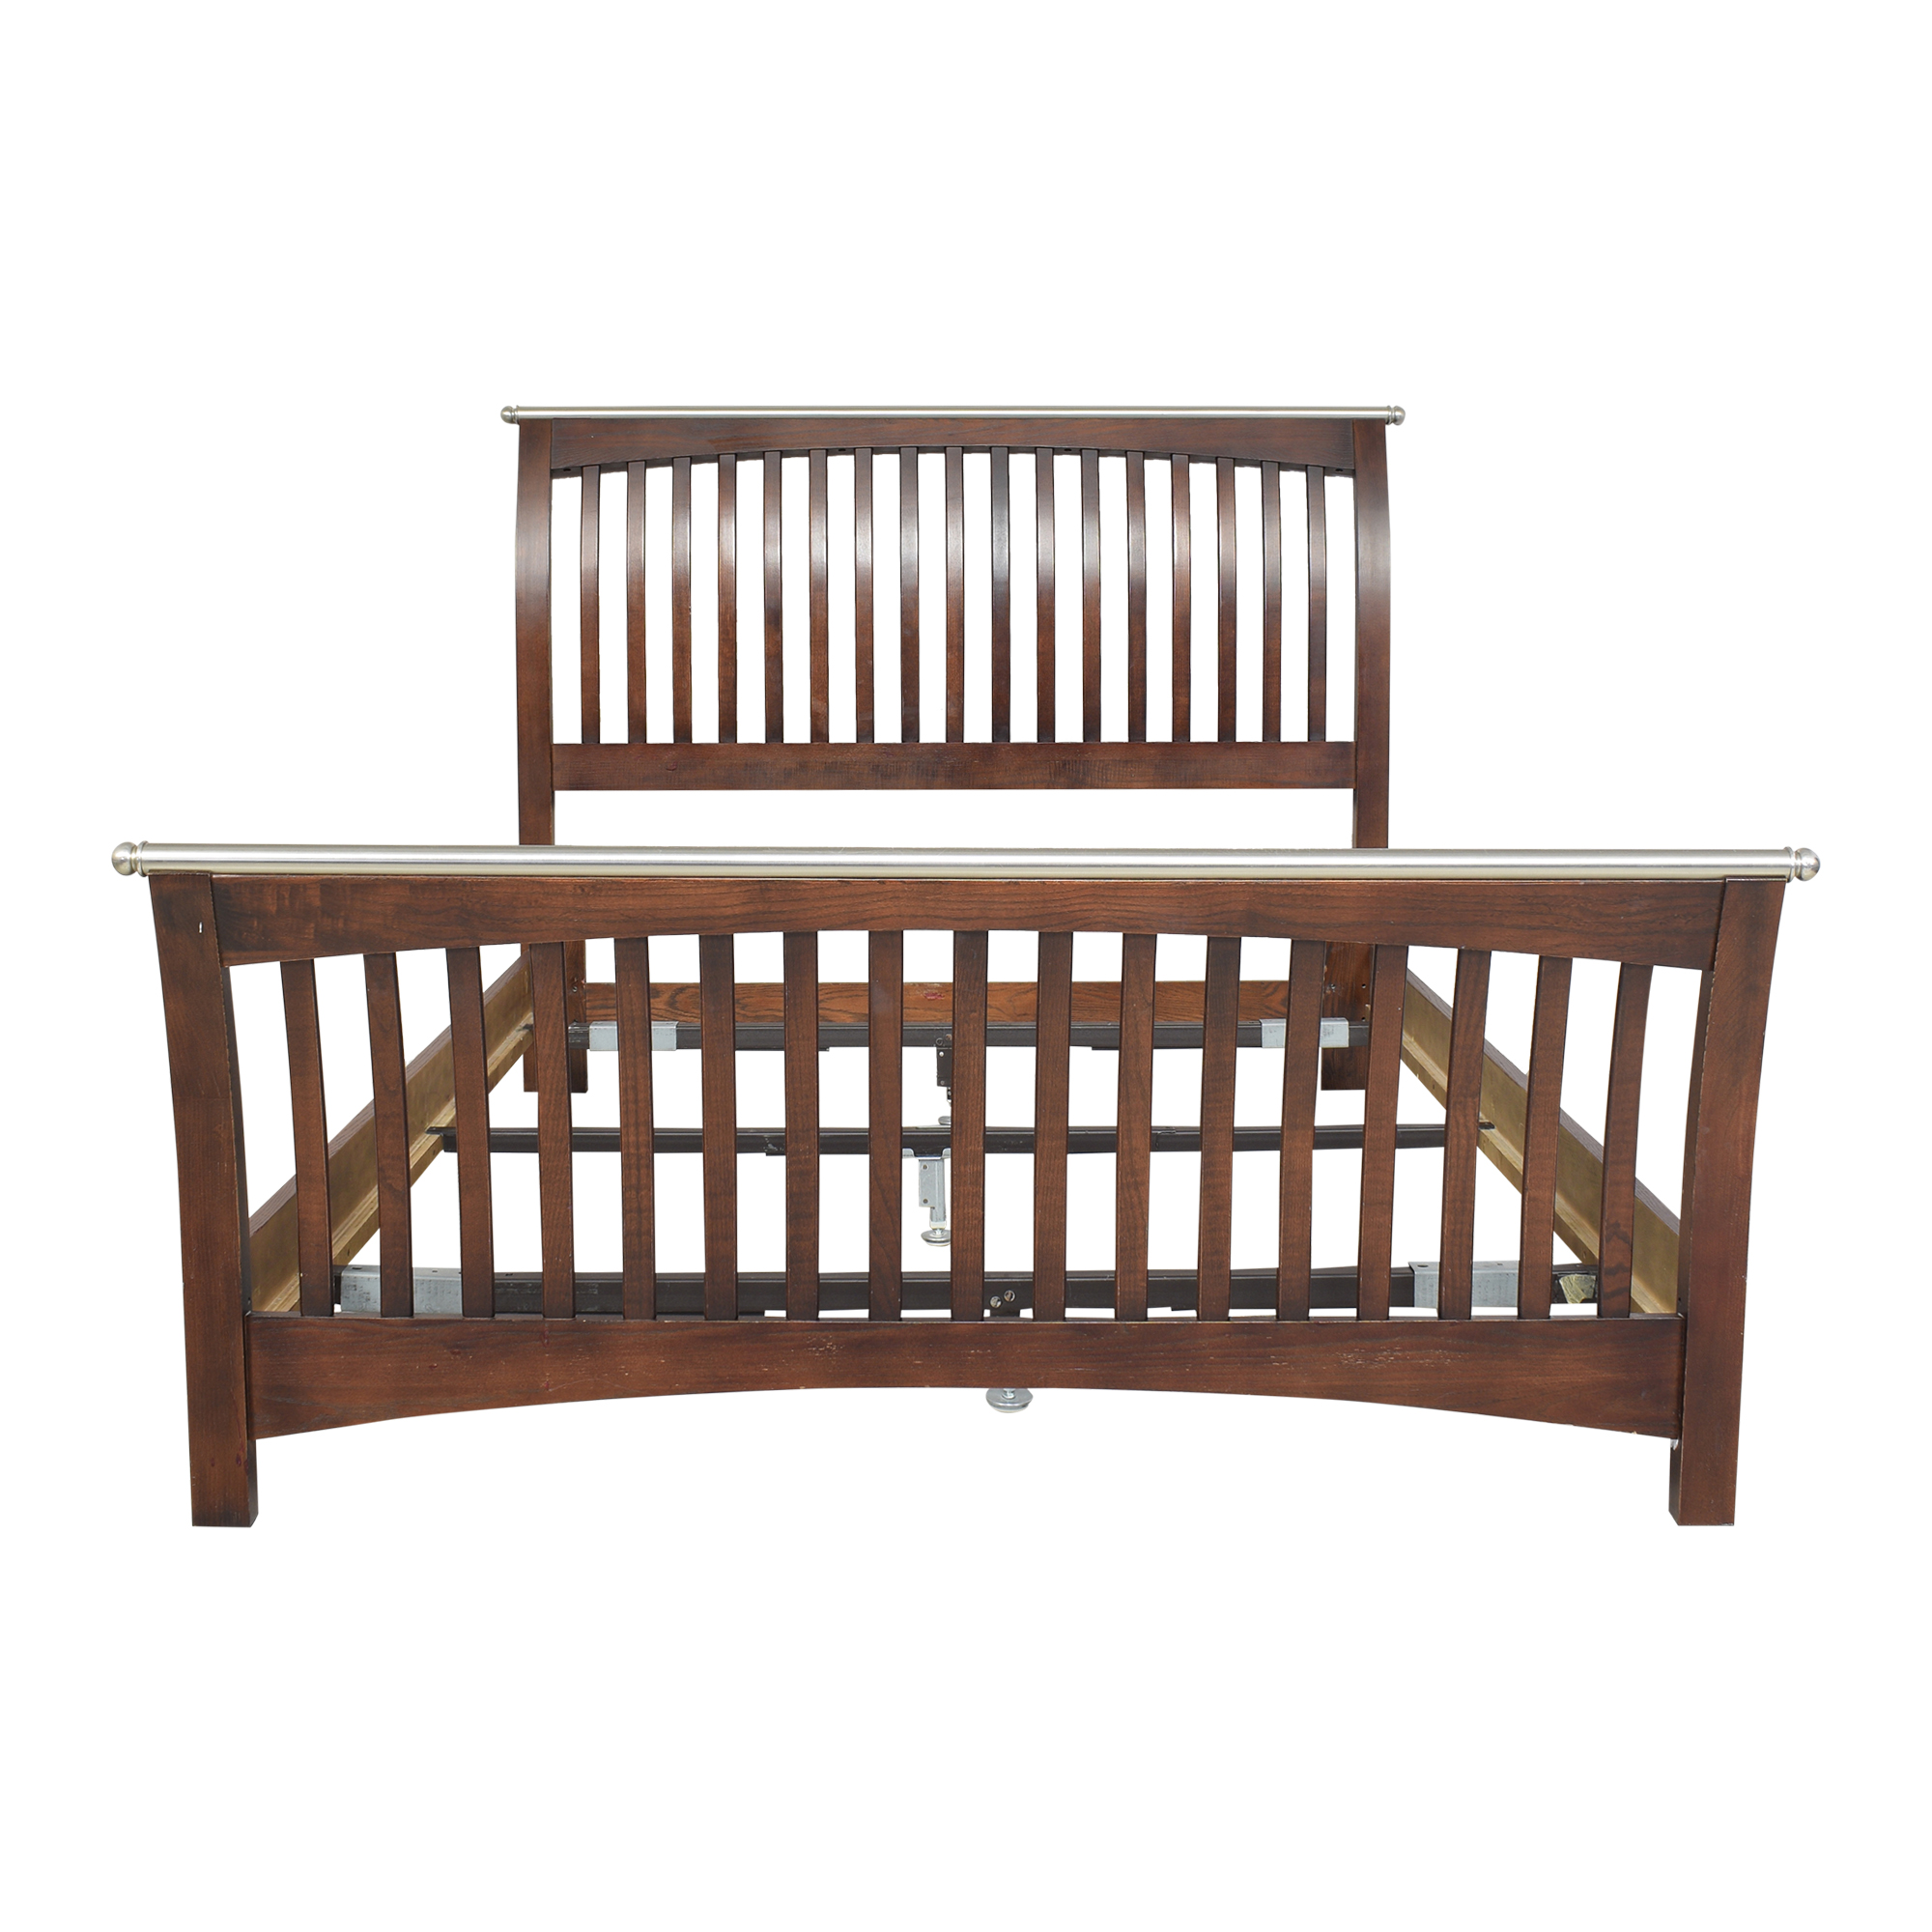 Thomasville Thomasville Mission-Style Queen Bed dimensions